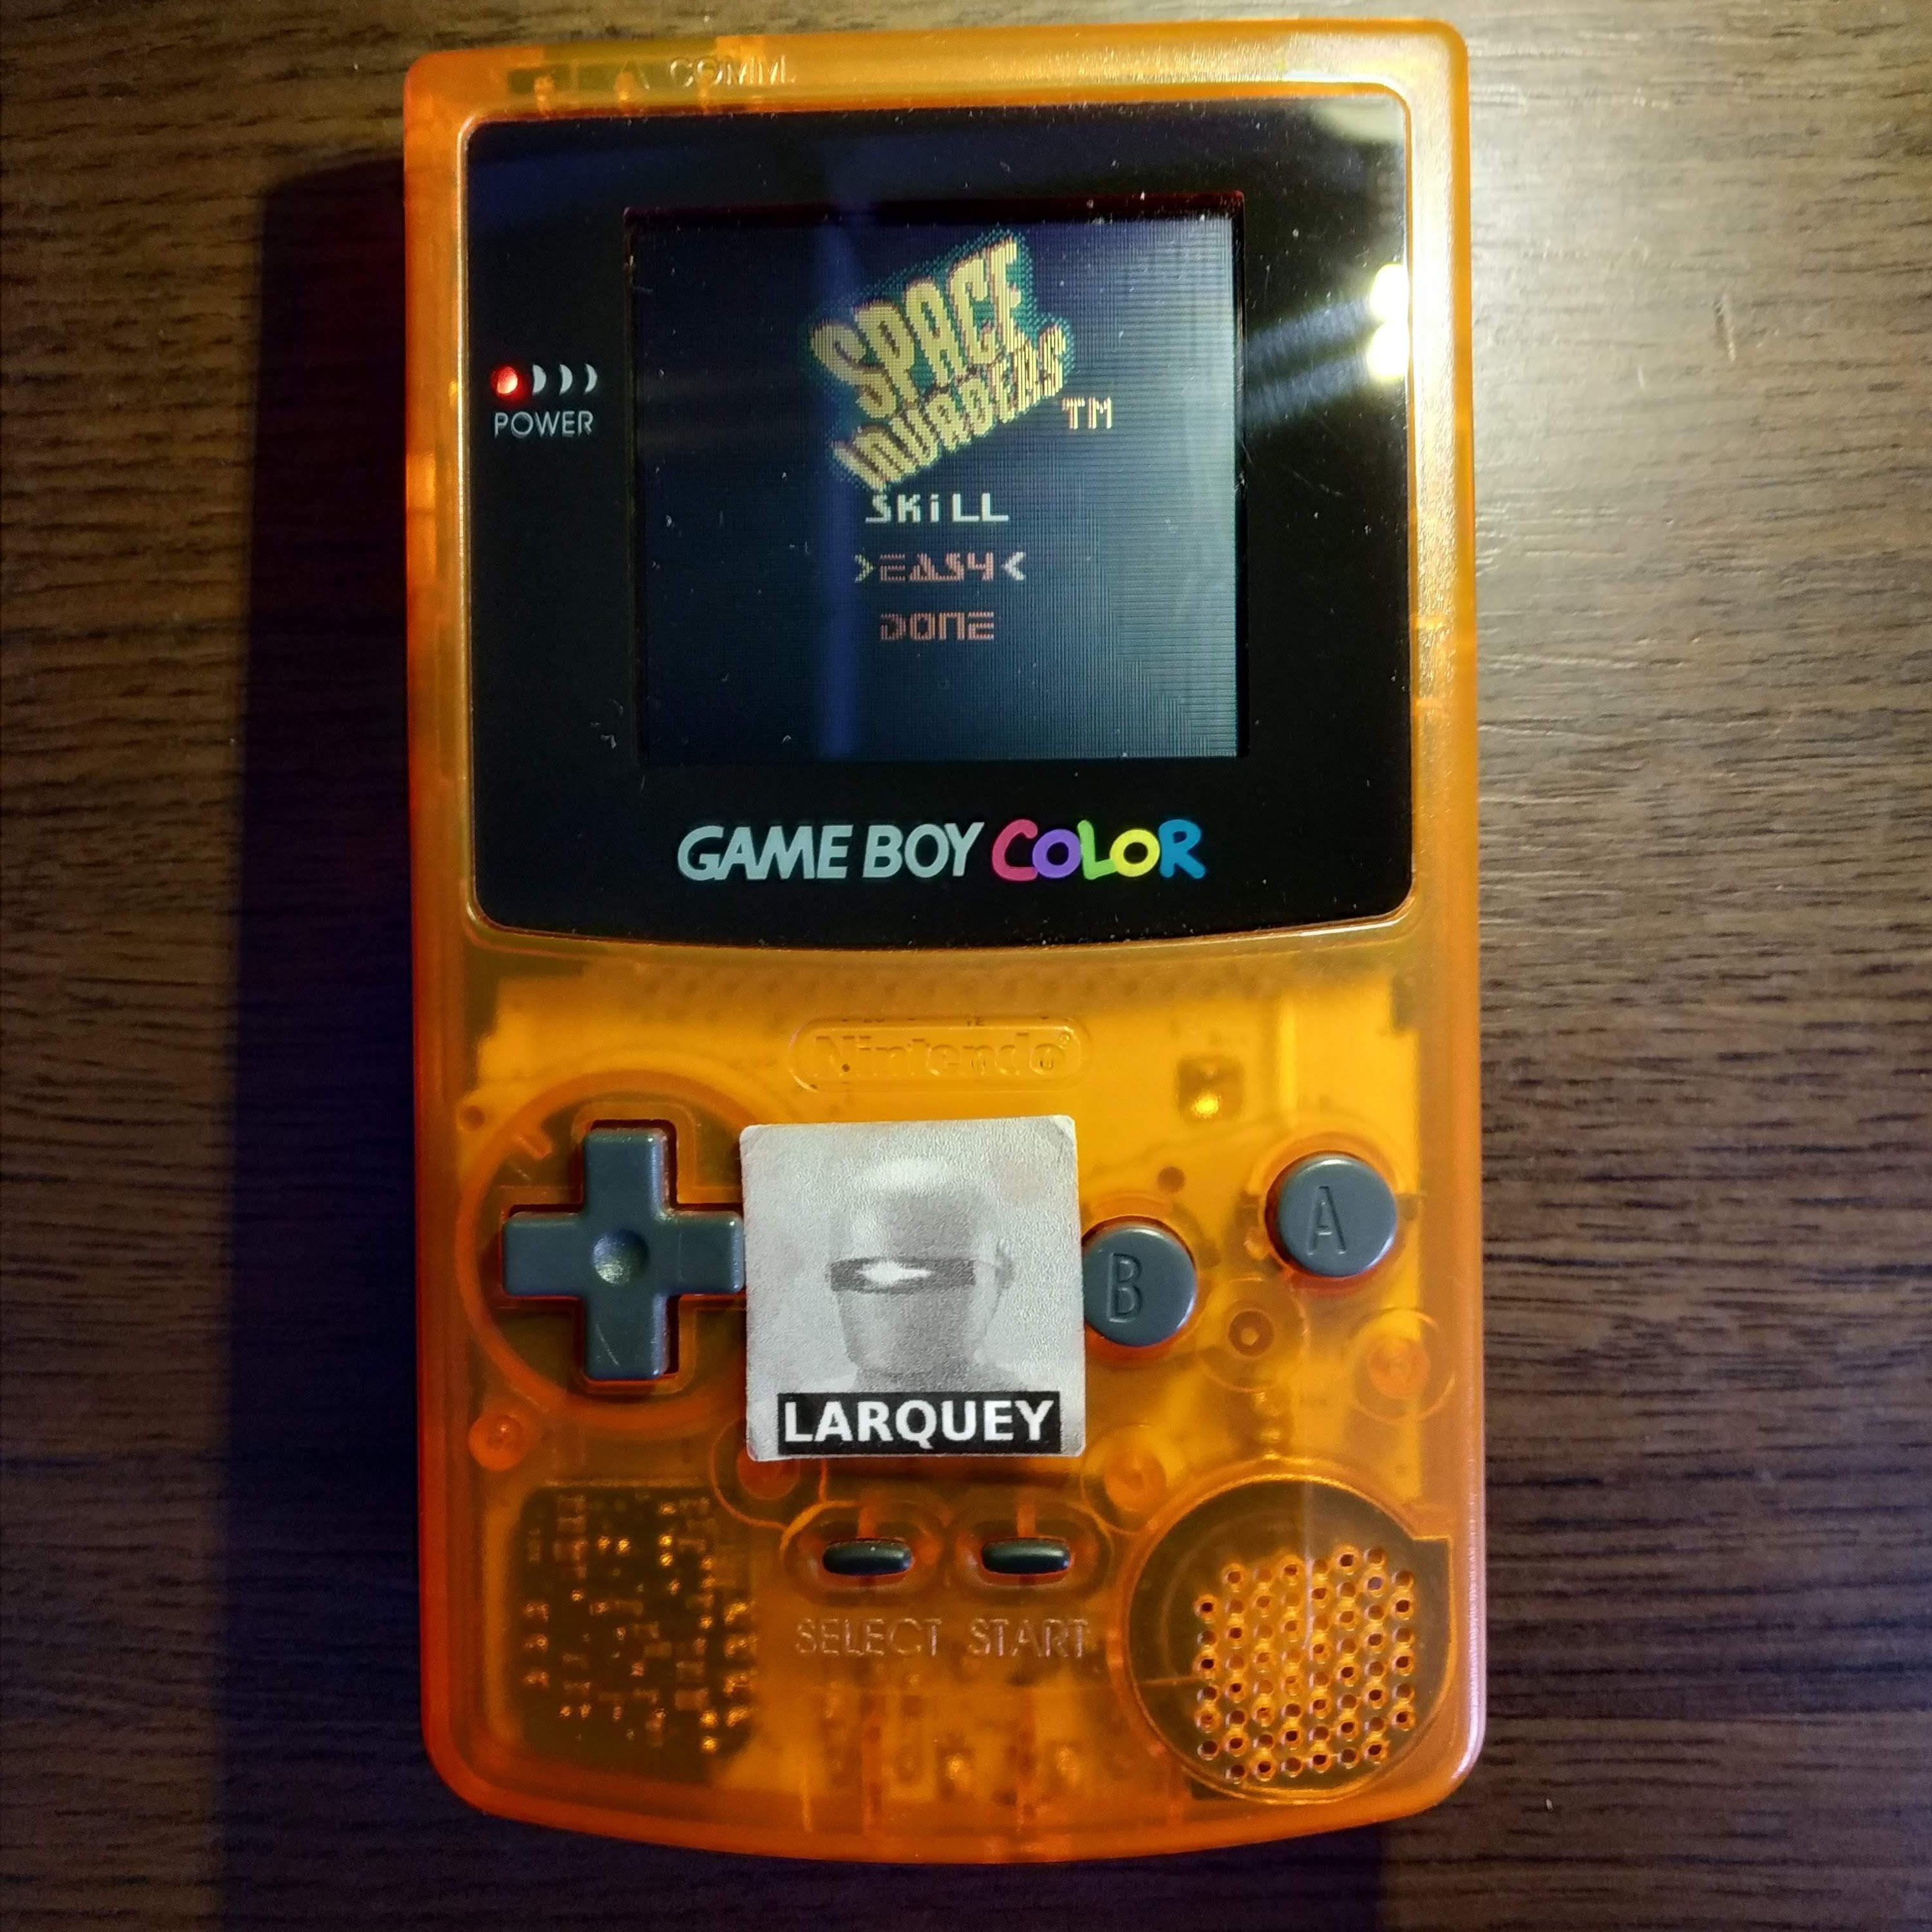 Larquey: Space Invaders [Easy] (Game Boy Color) 5,717 points on 2020-07-15 11:17:50